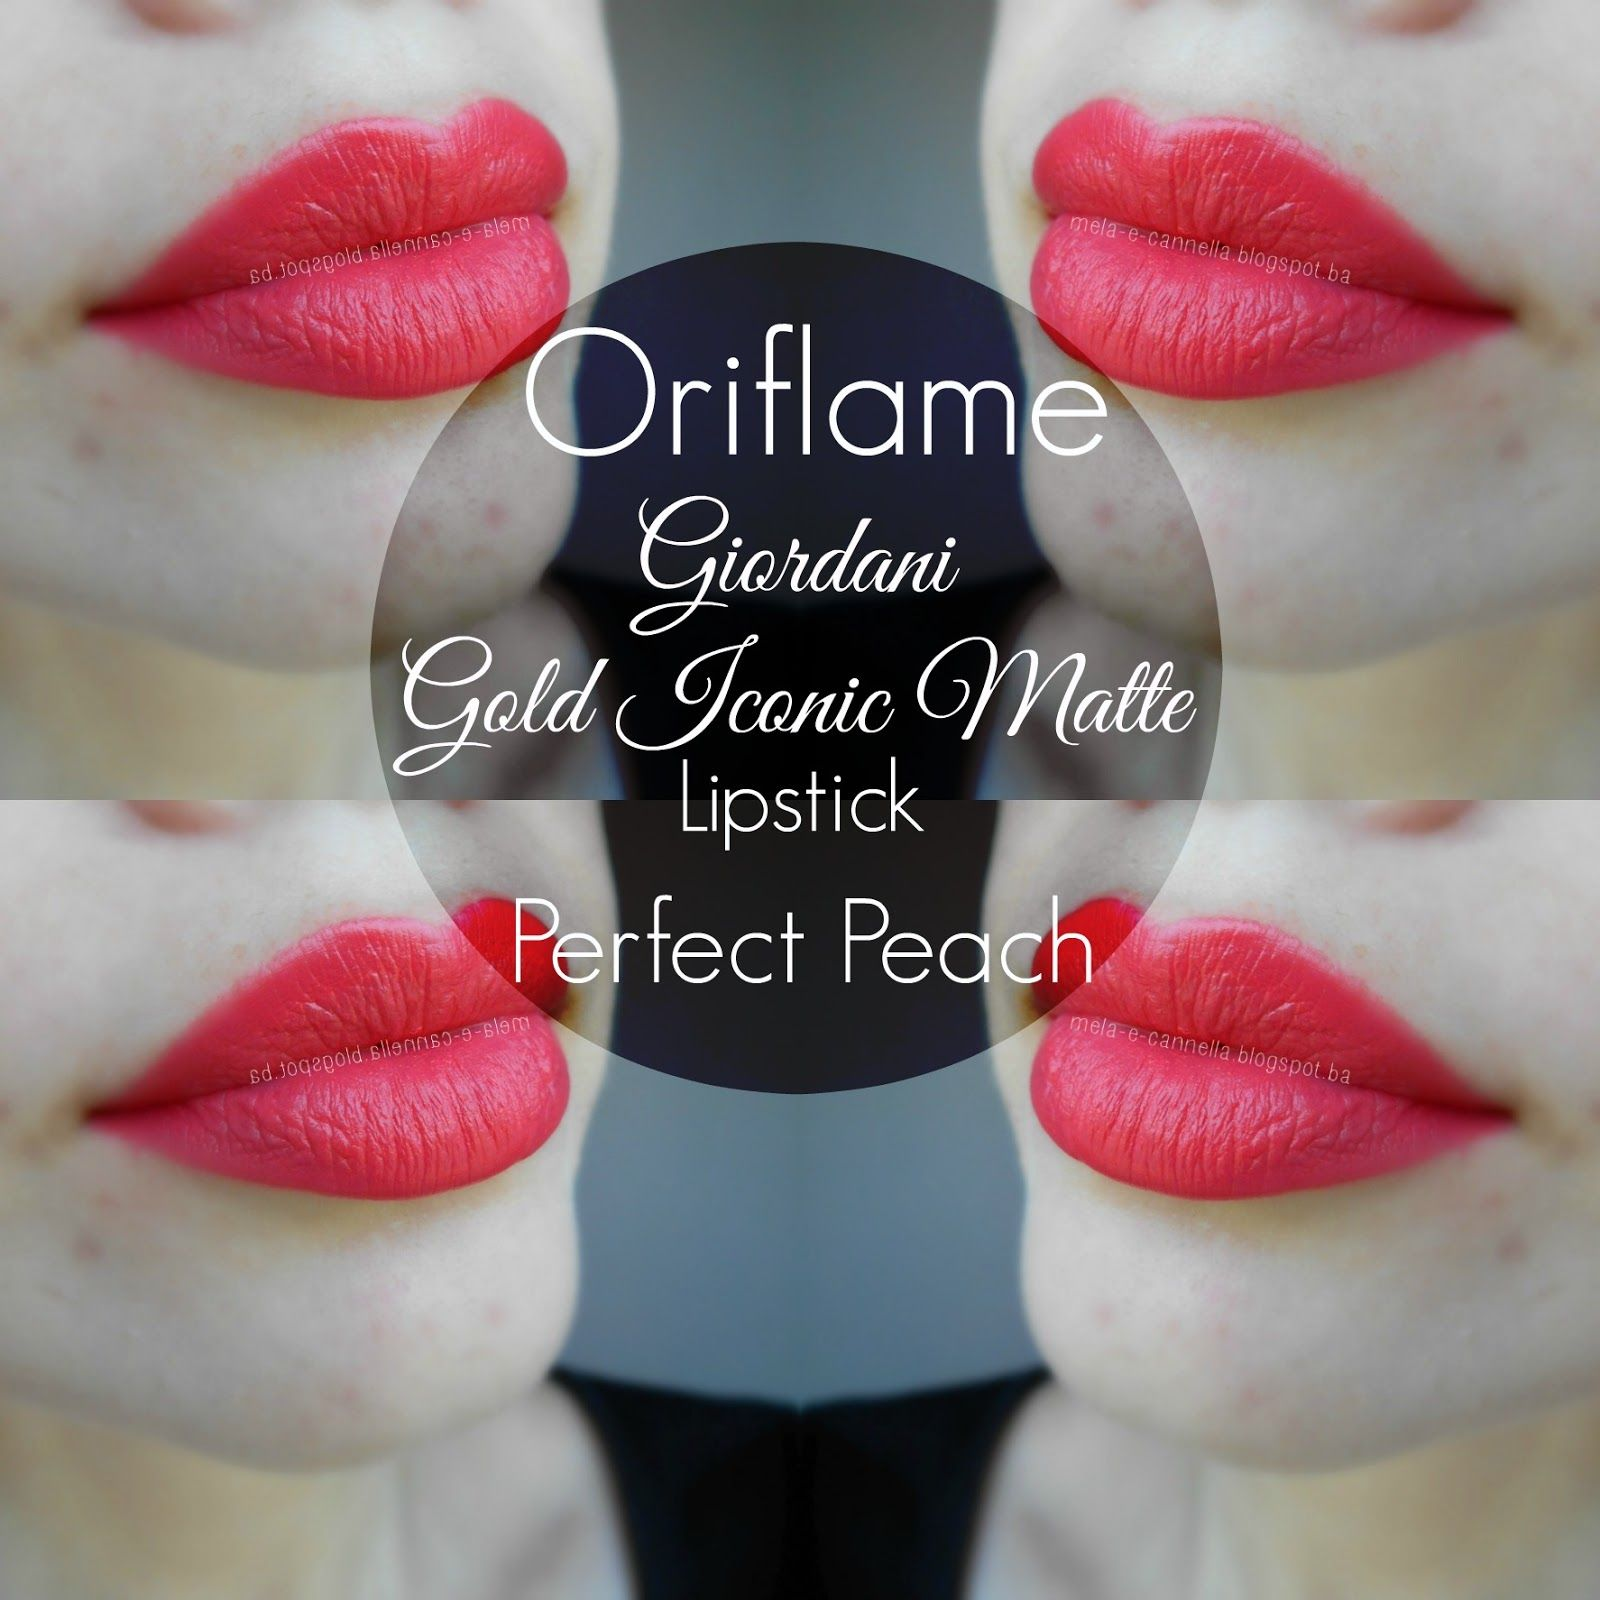 Oriflame Giordani Gold Iconic Matte Perfect Peach Secret Concealer Light